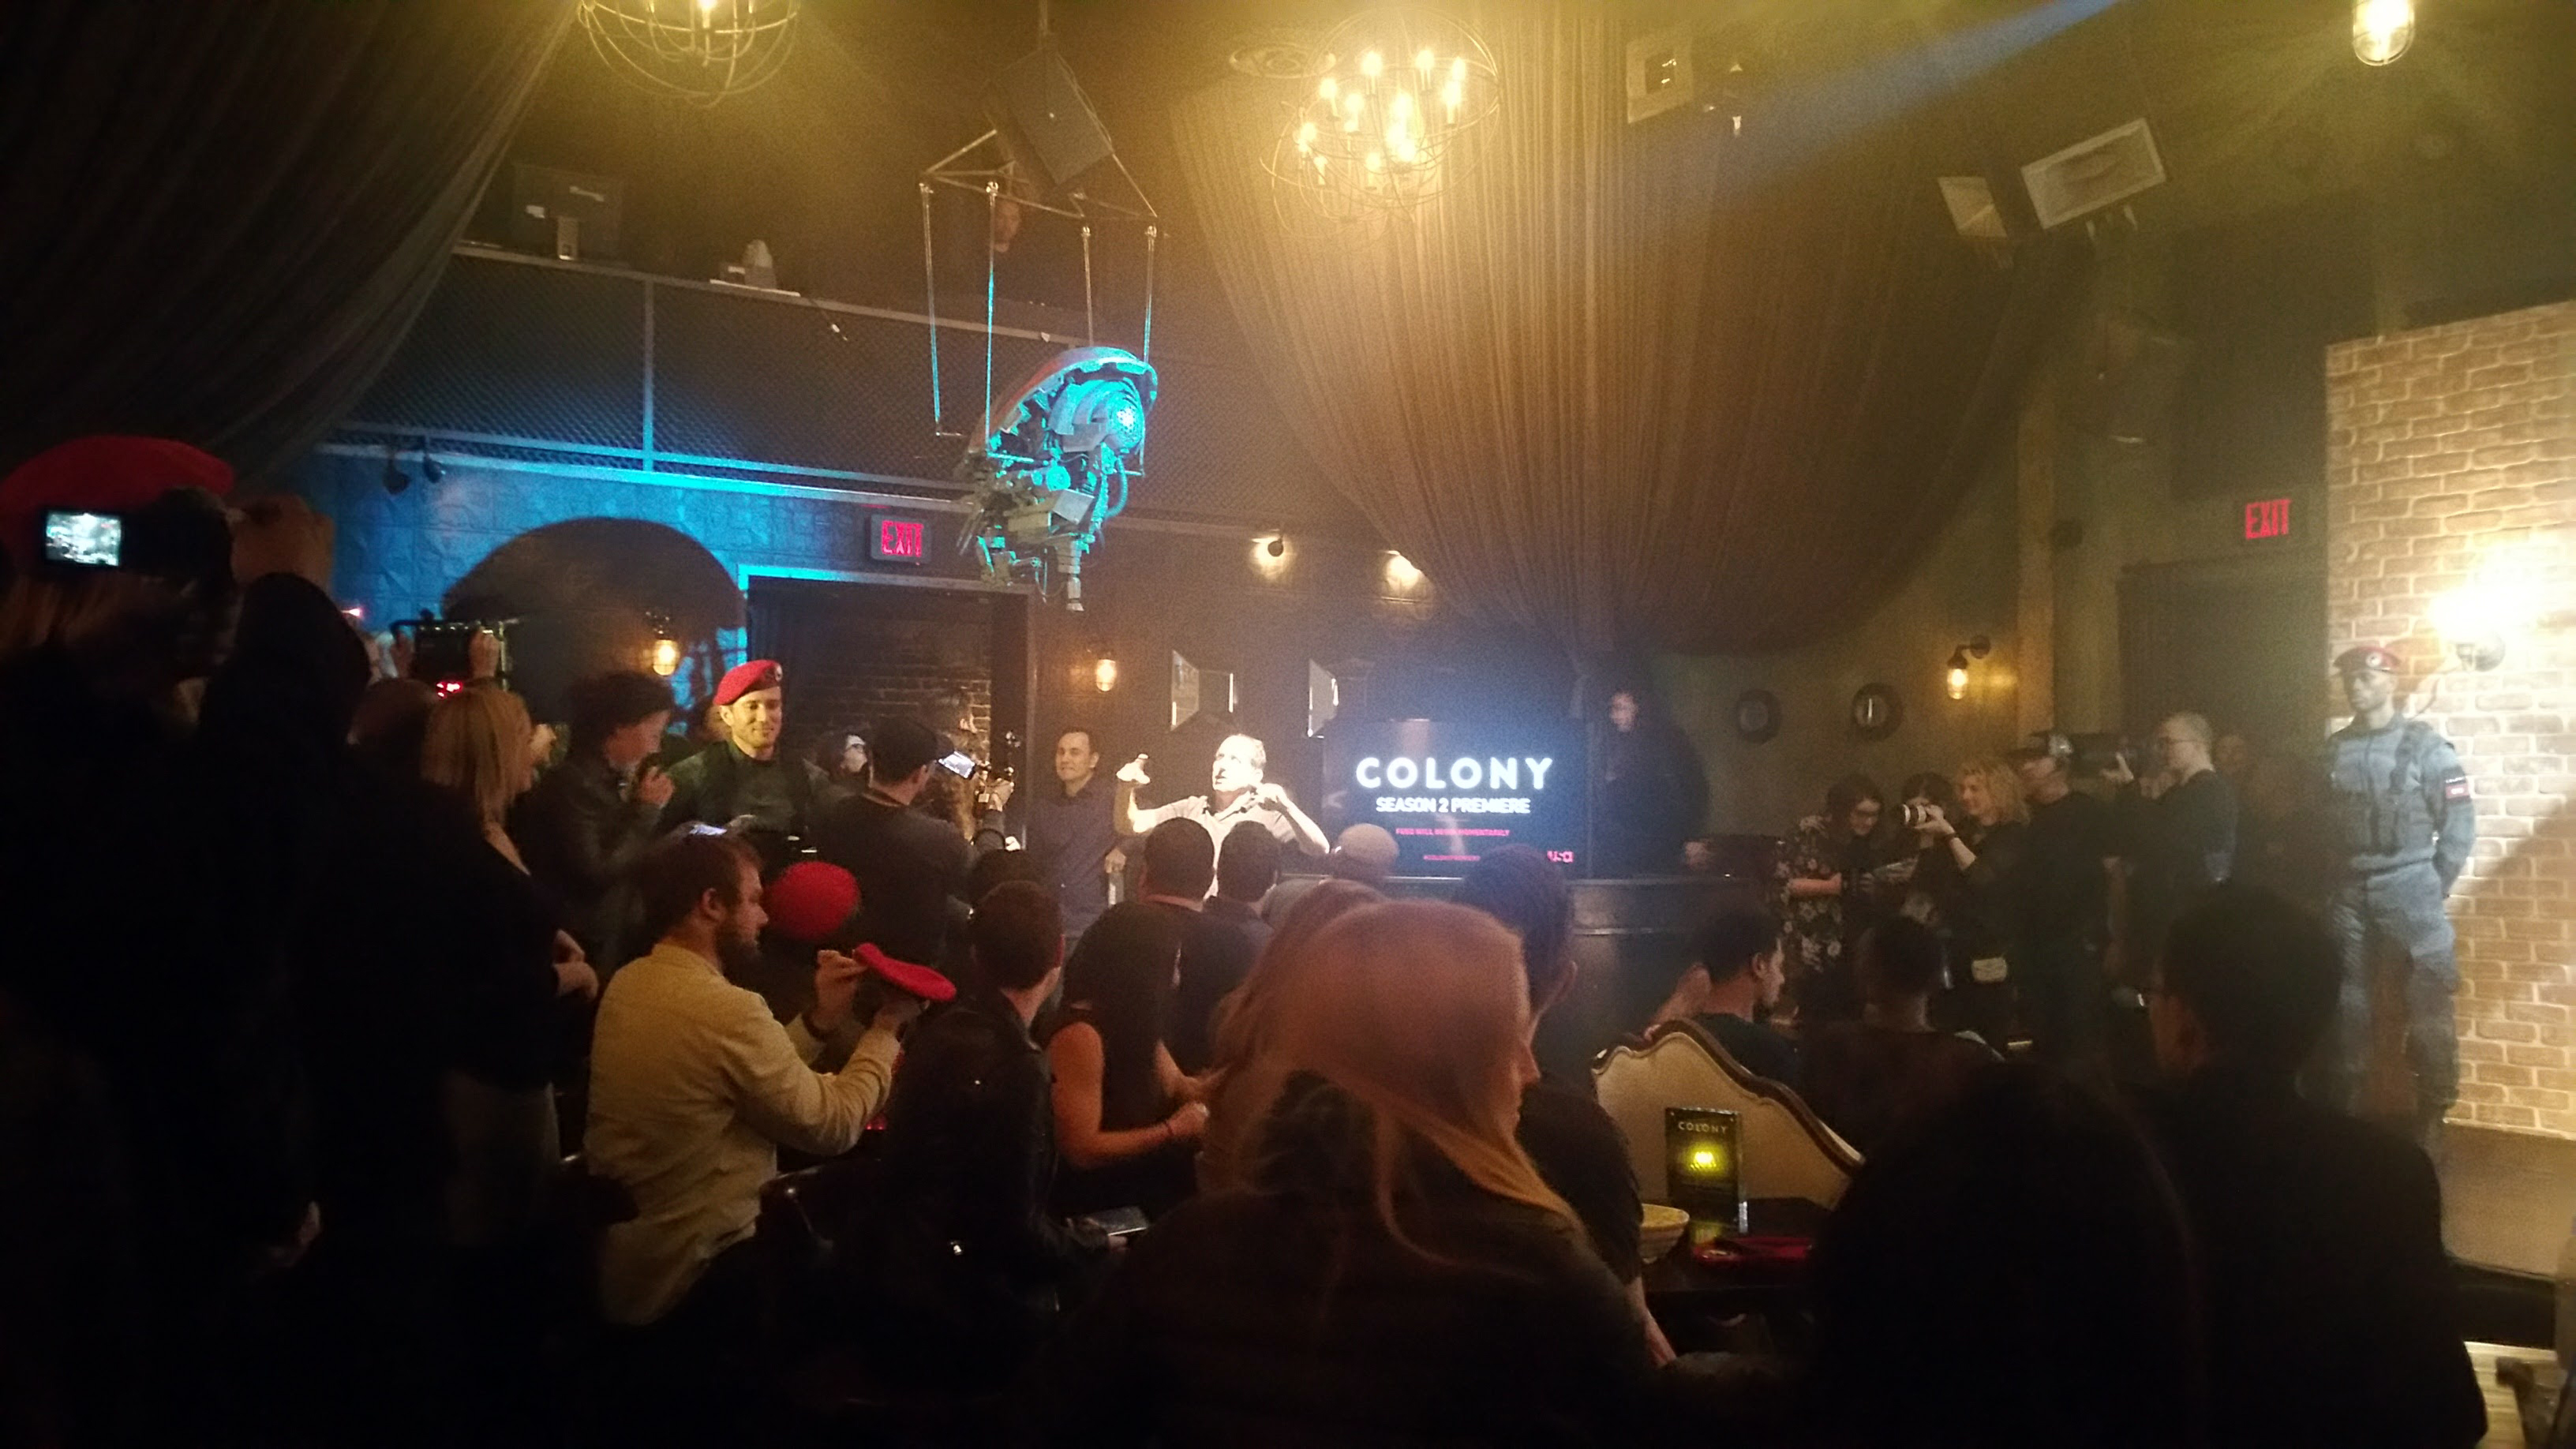 Premiere Party Brings A Bit of 'Colony' To Life